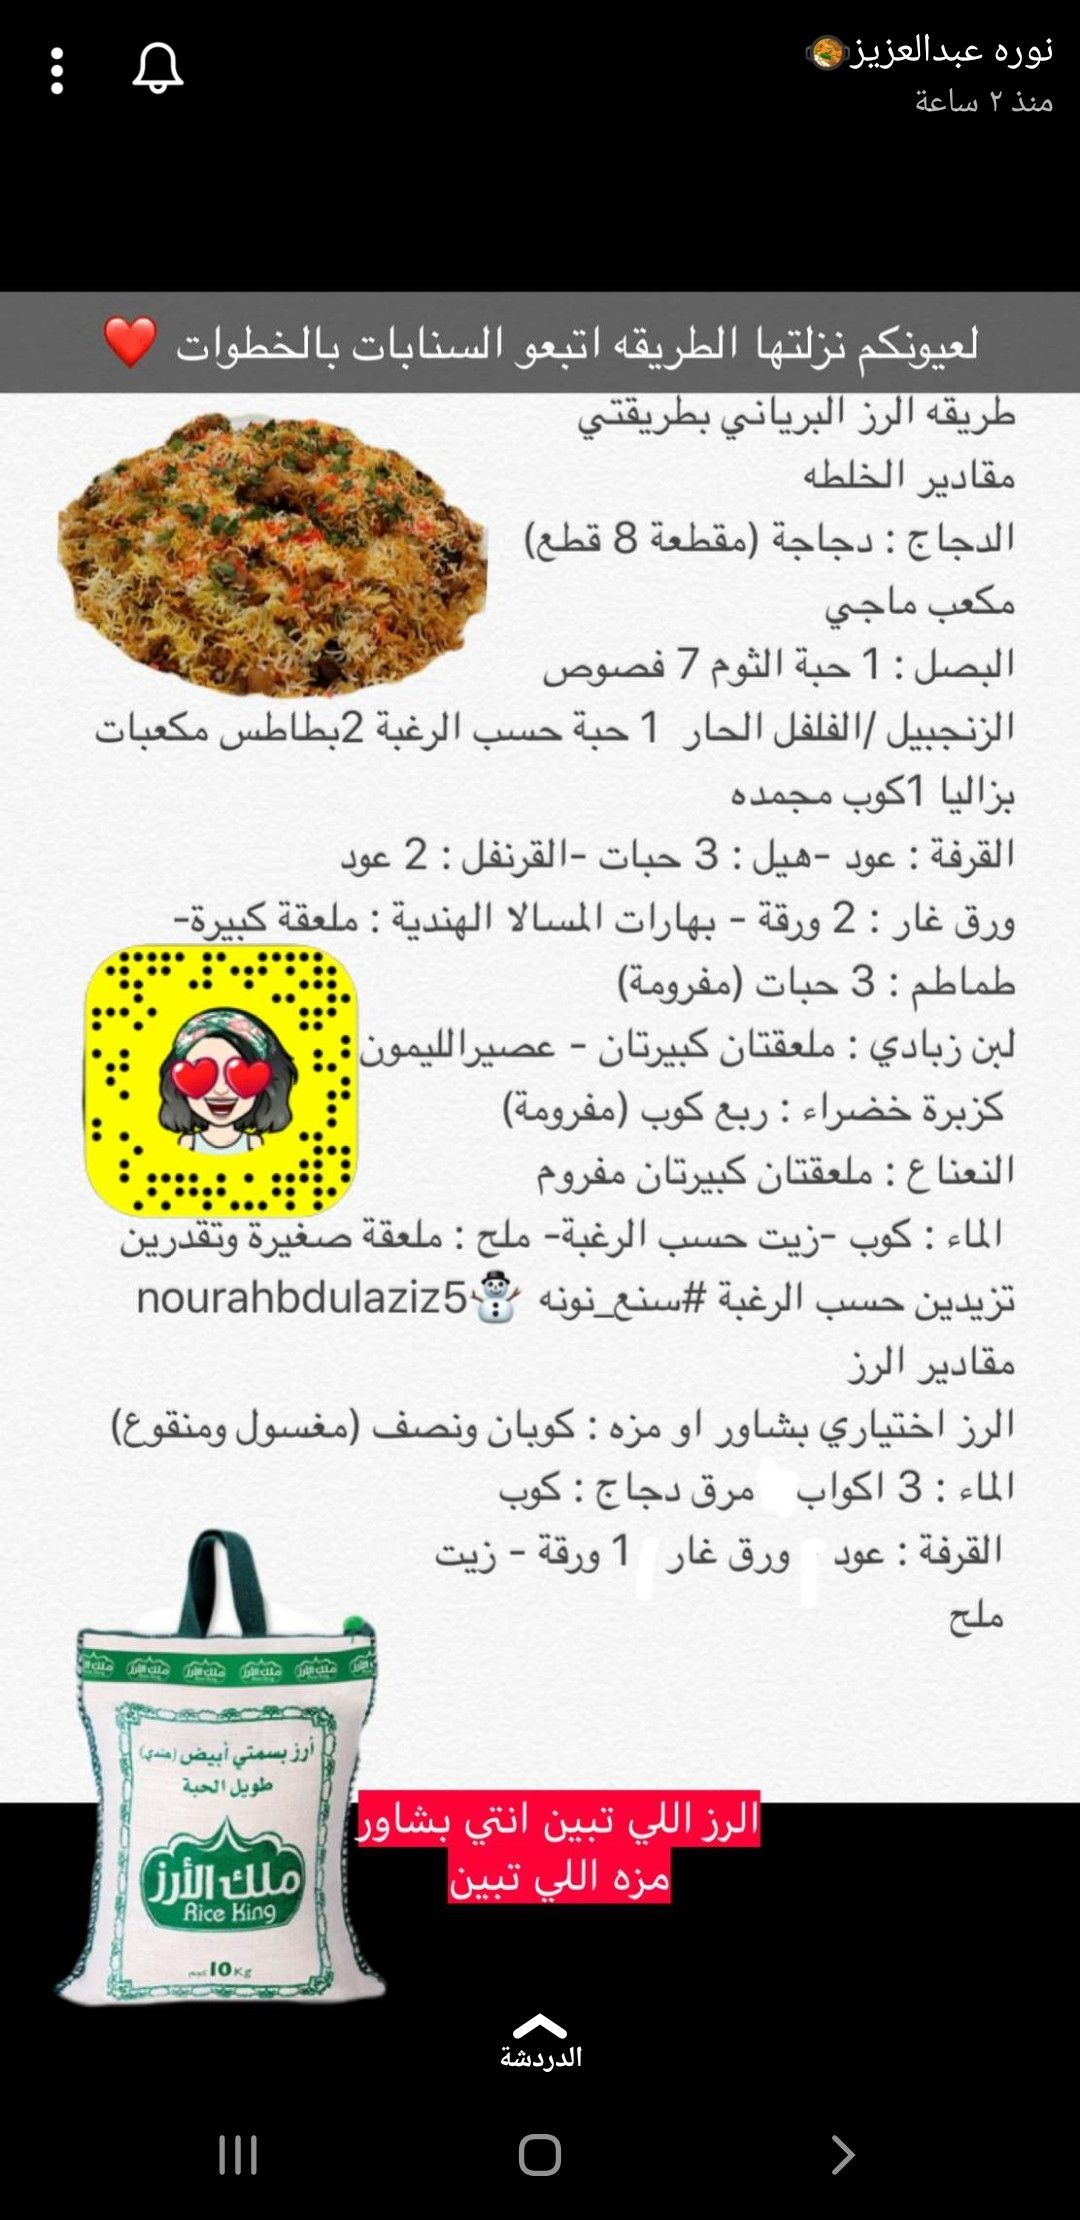 Pin By Milaf On طبخات Cooking Food Recipies Food And Drink